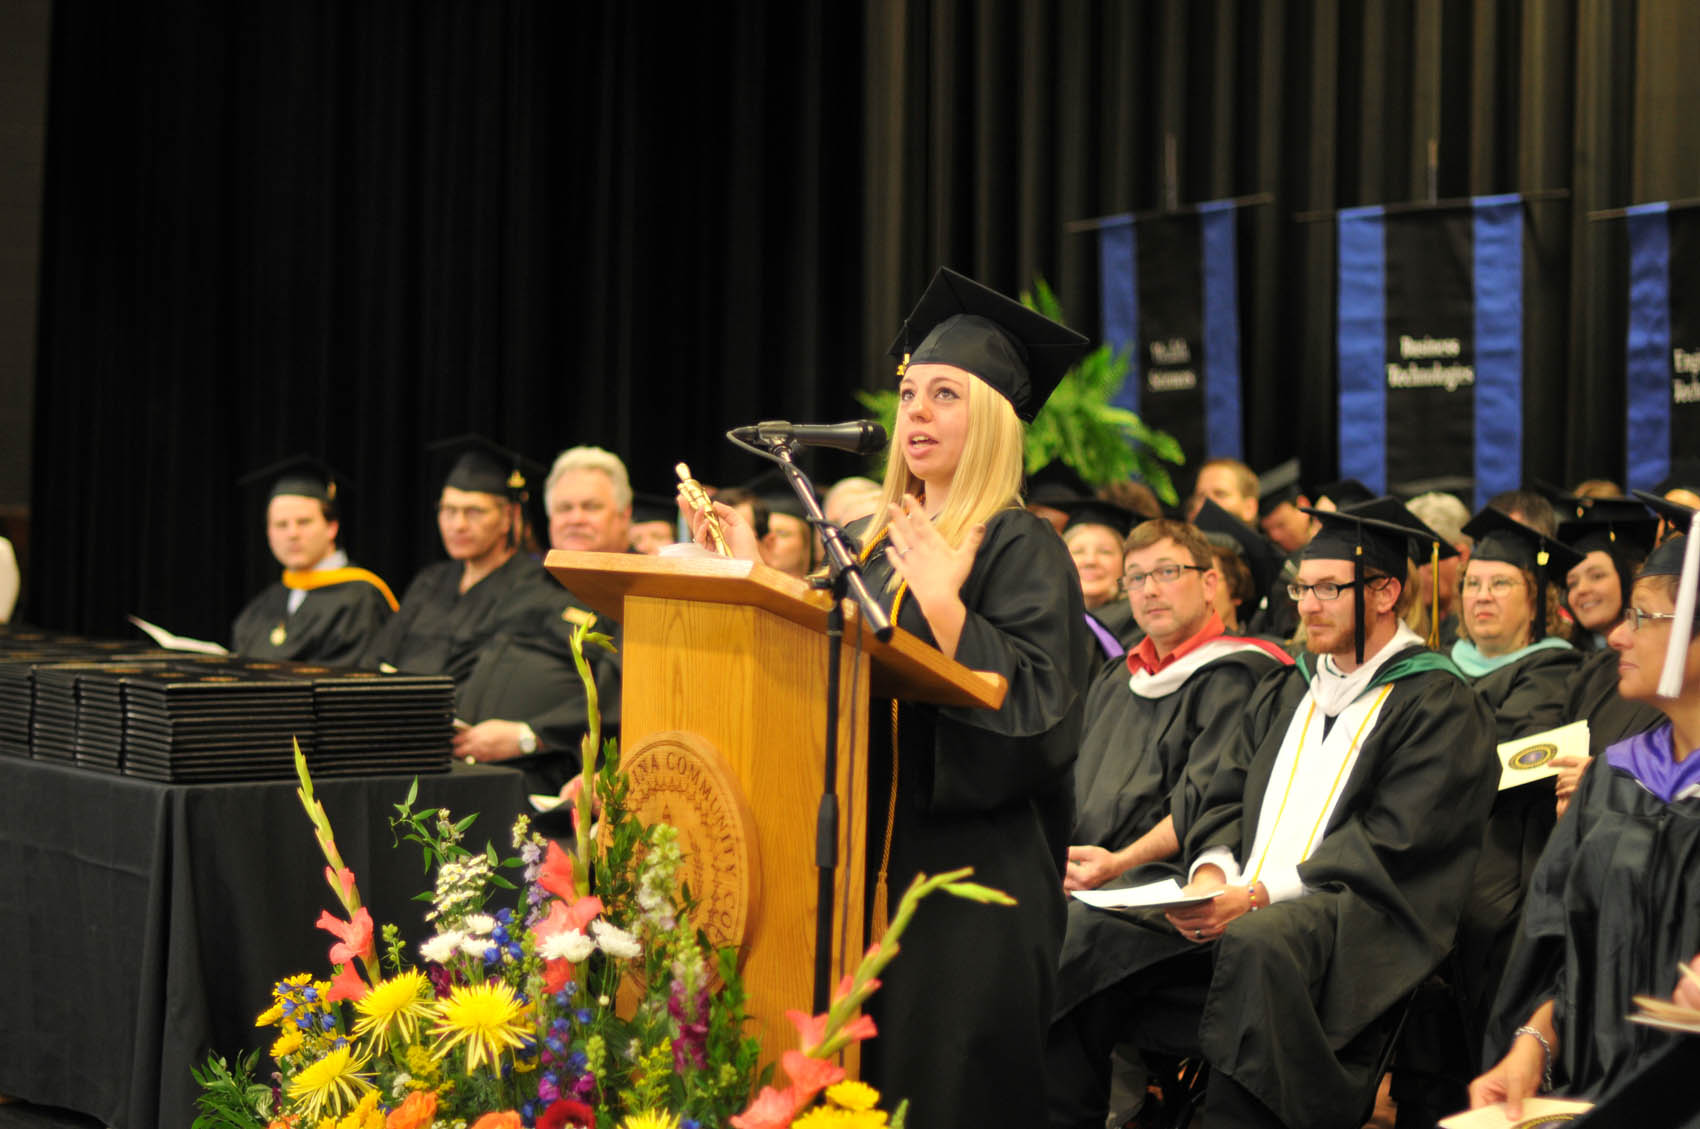 Click to enlarge,  Jackie Desmarais, who received the Associate in Arts degree, was the student speaker at the Central Carolina Community College 11:30 a.m. commencement exercises held on May 12 at the Dennis A. Wicker Civic Center.